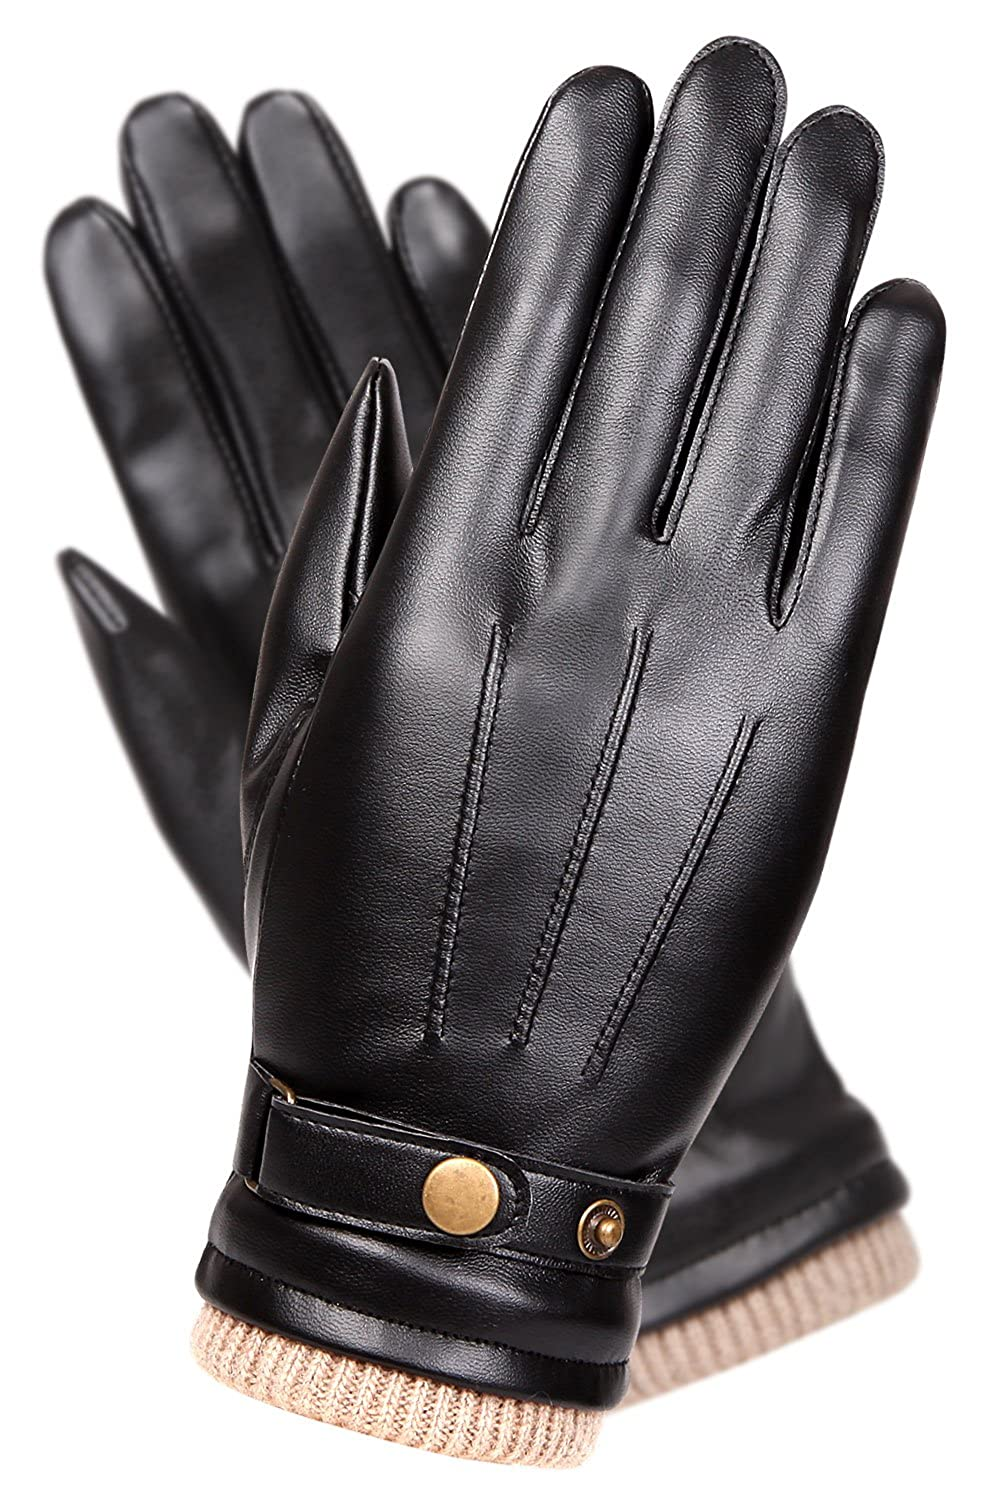 Mens leather gloves for iphone - Mens Touchscreen Texting Winter Pu Leather Gloves Driving Outdoor Long Fleece Lining 8 Black At Amazon Men S Clothing Store